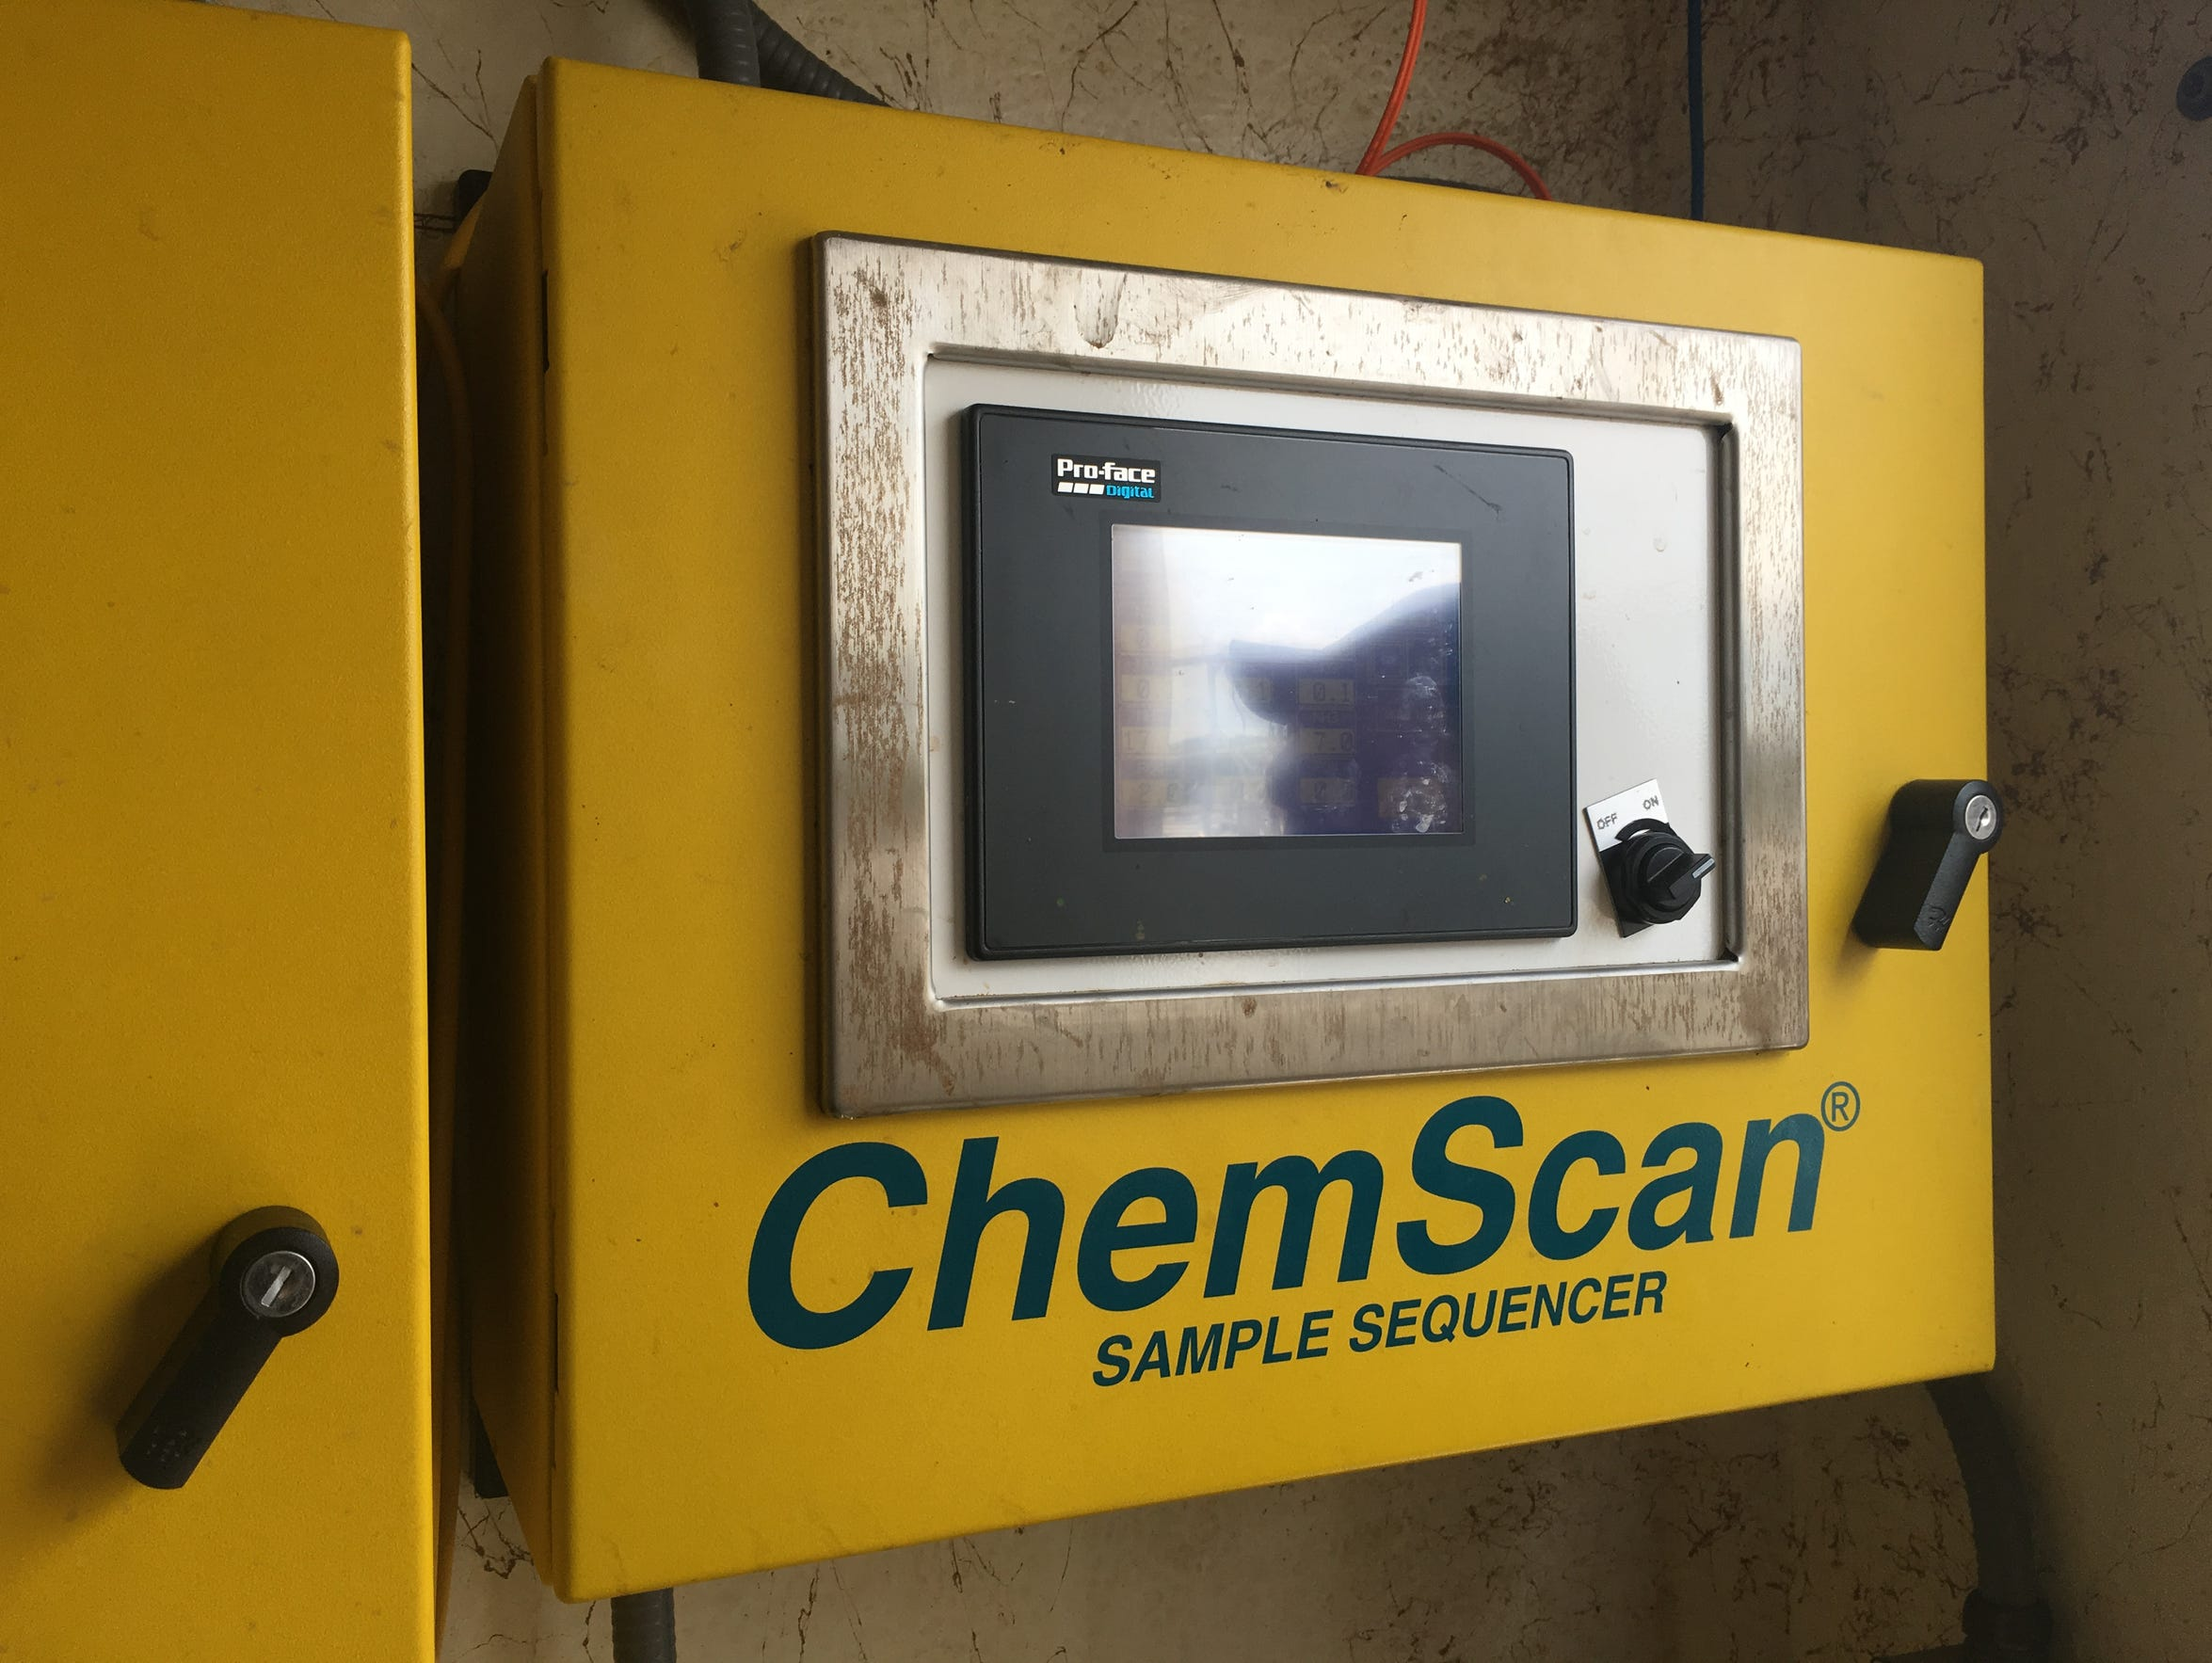 A sample sequencer at the Middle River Wastewater treatment